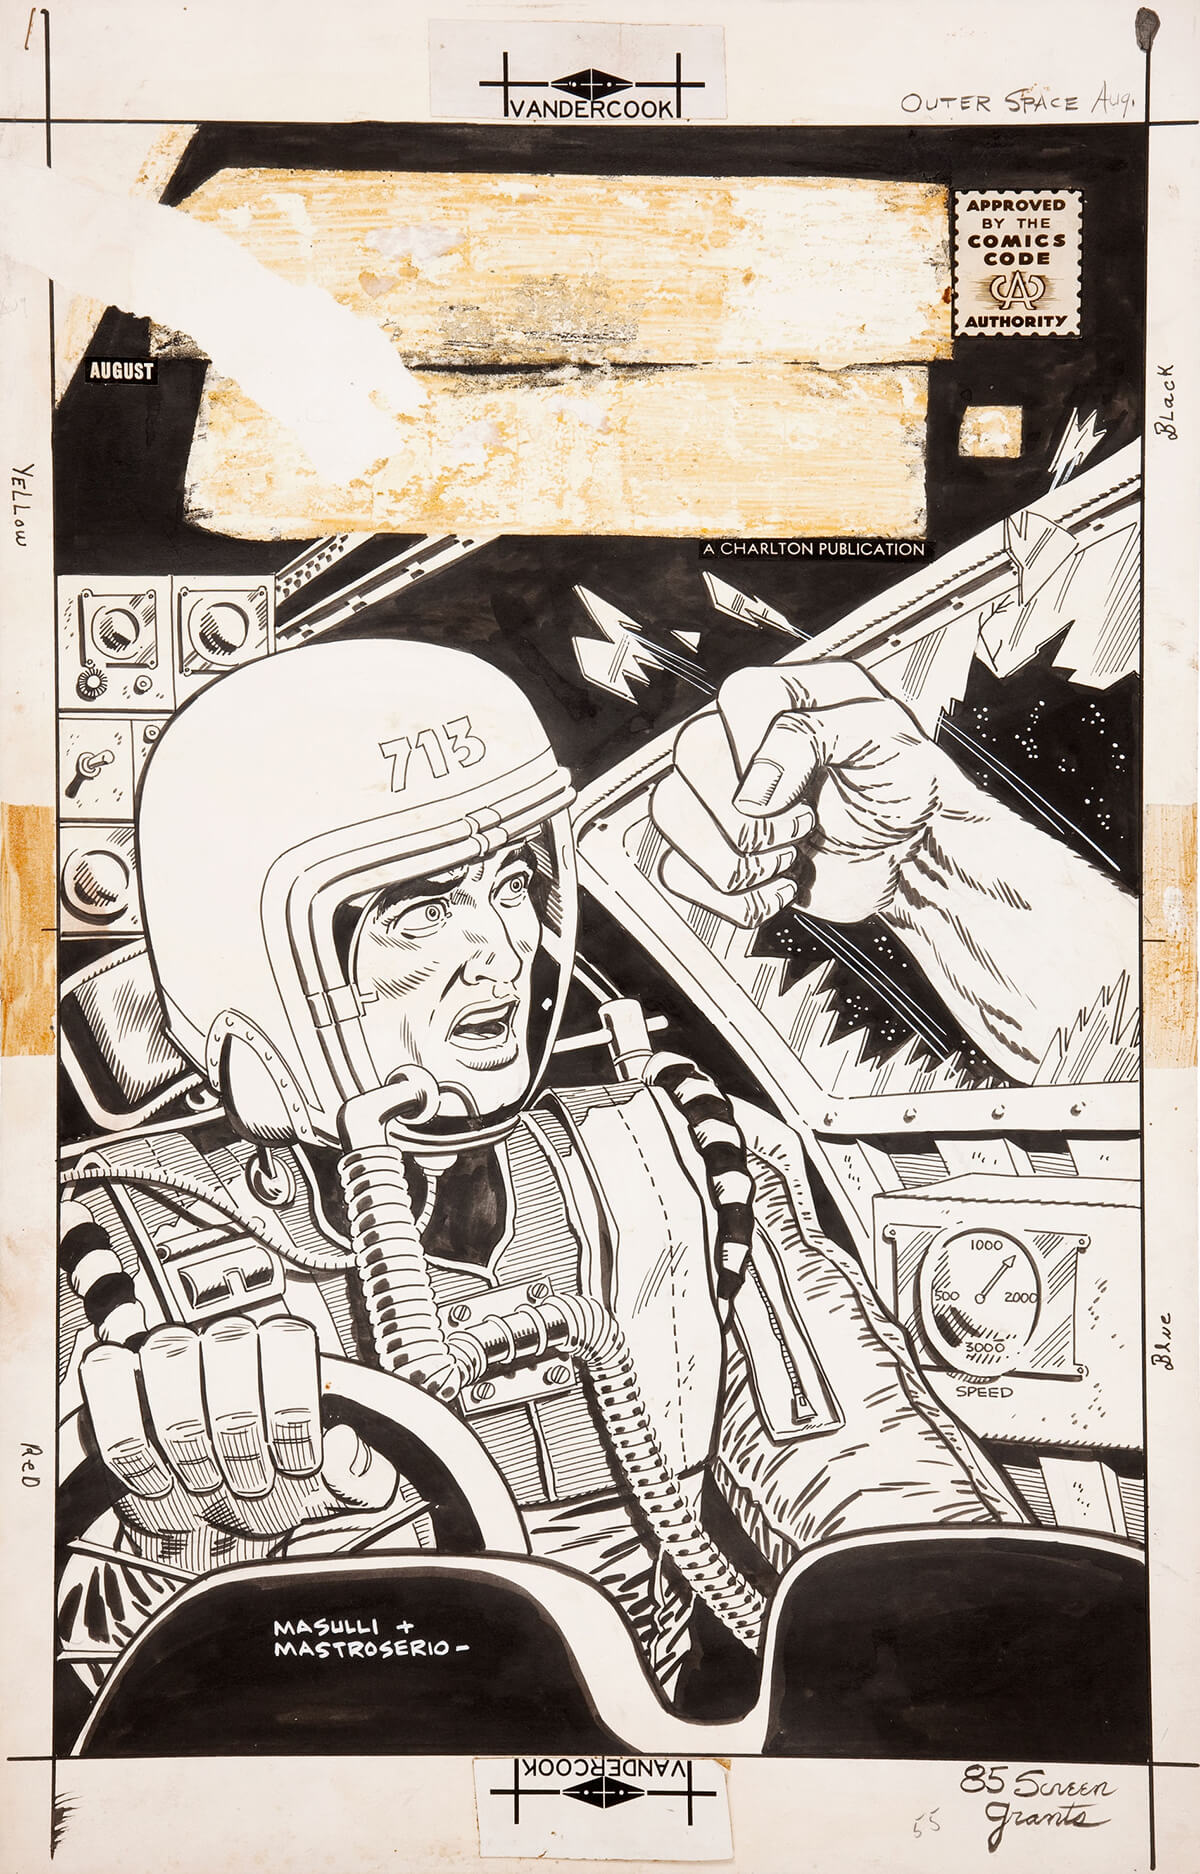 Outer Space 18 Cover art by Pat Masulli and Rocco Mastroserio